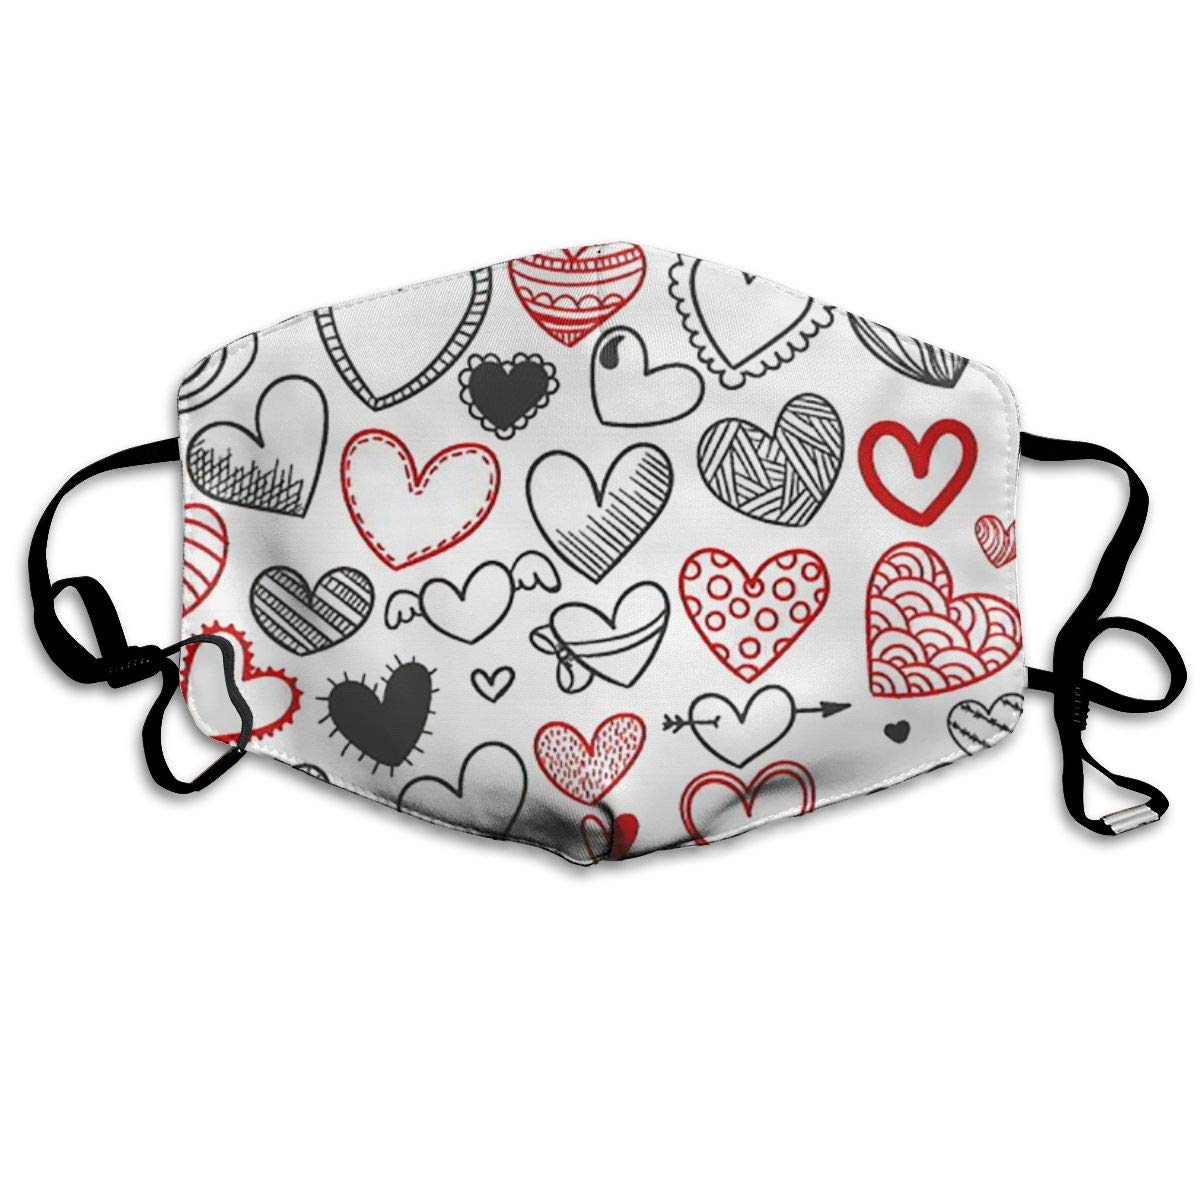 Mouth Mask Love And Heart Print Masks - Breathable Adjustable Windproof Mouth-Muffle, Camping Running For Women And Men